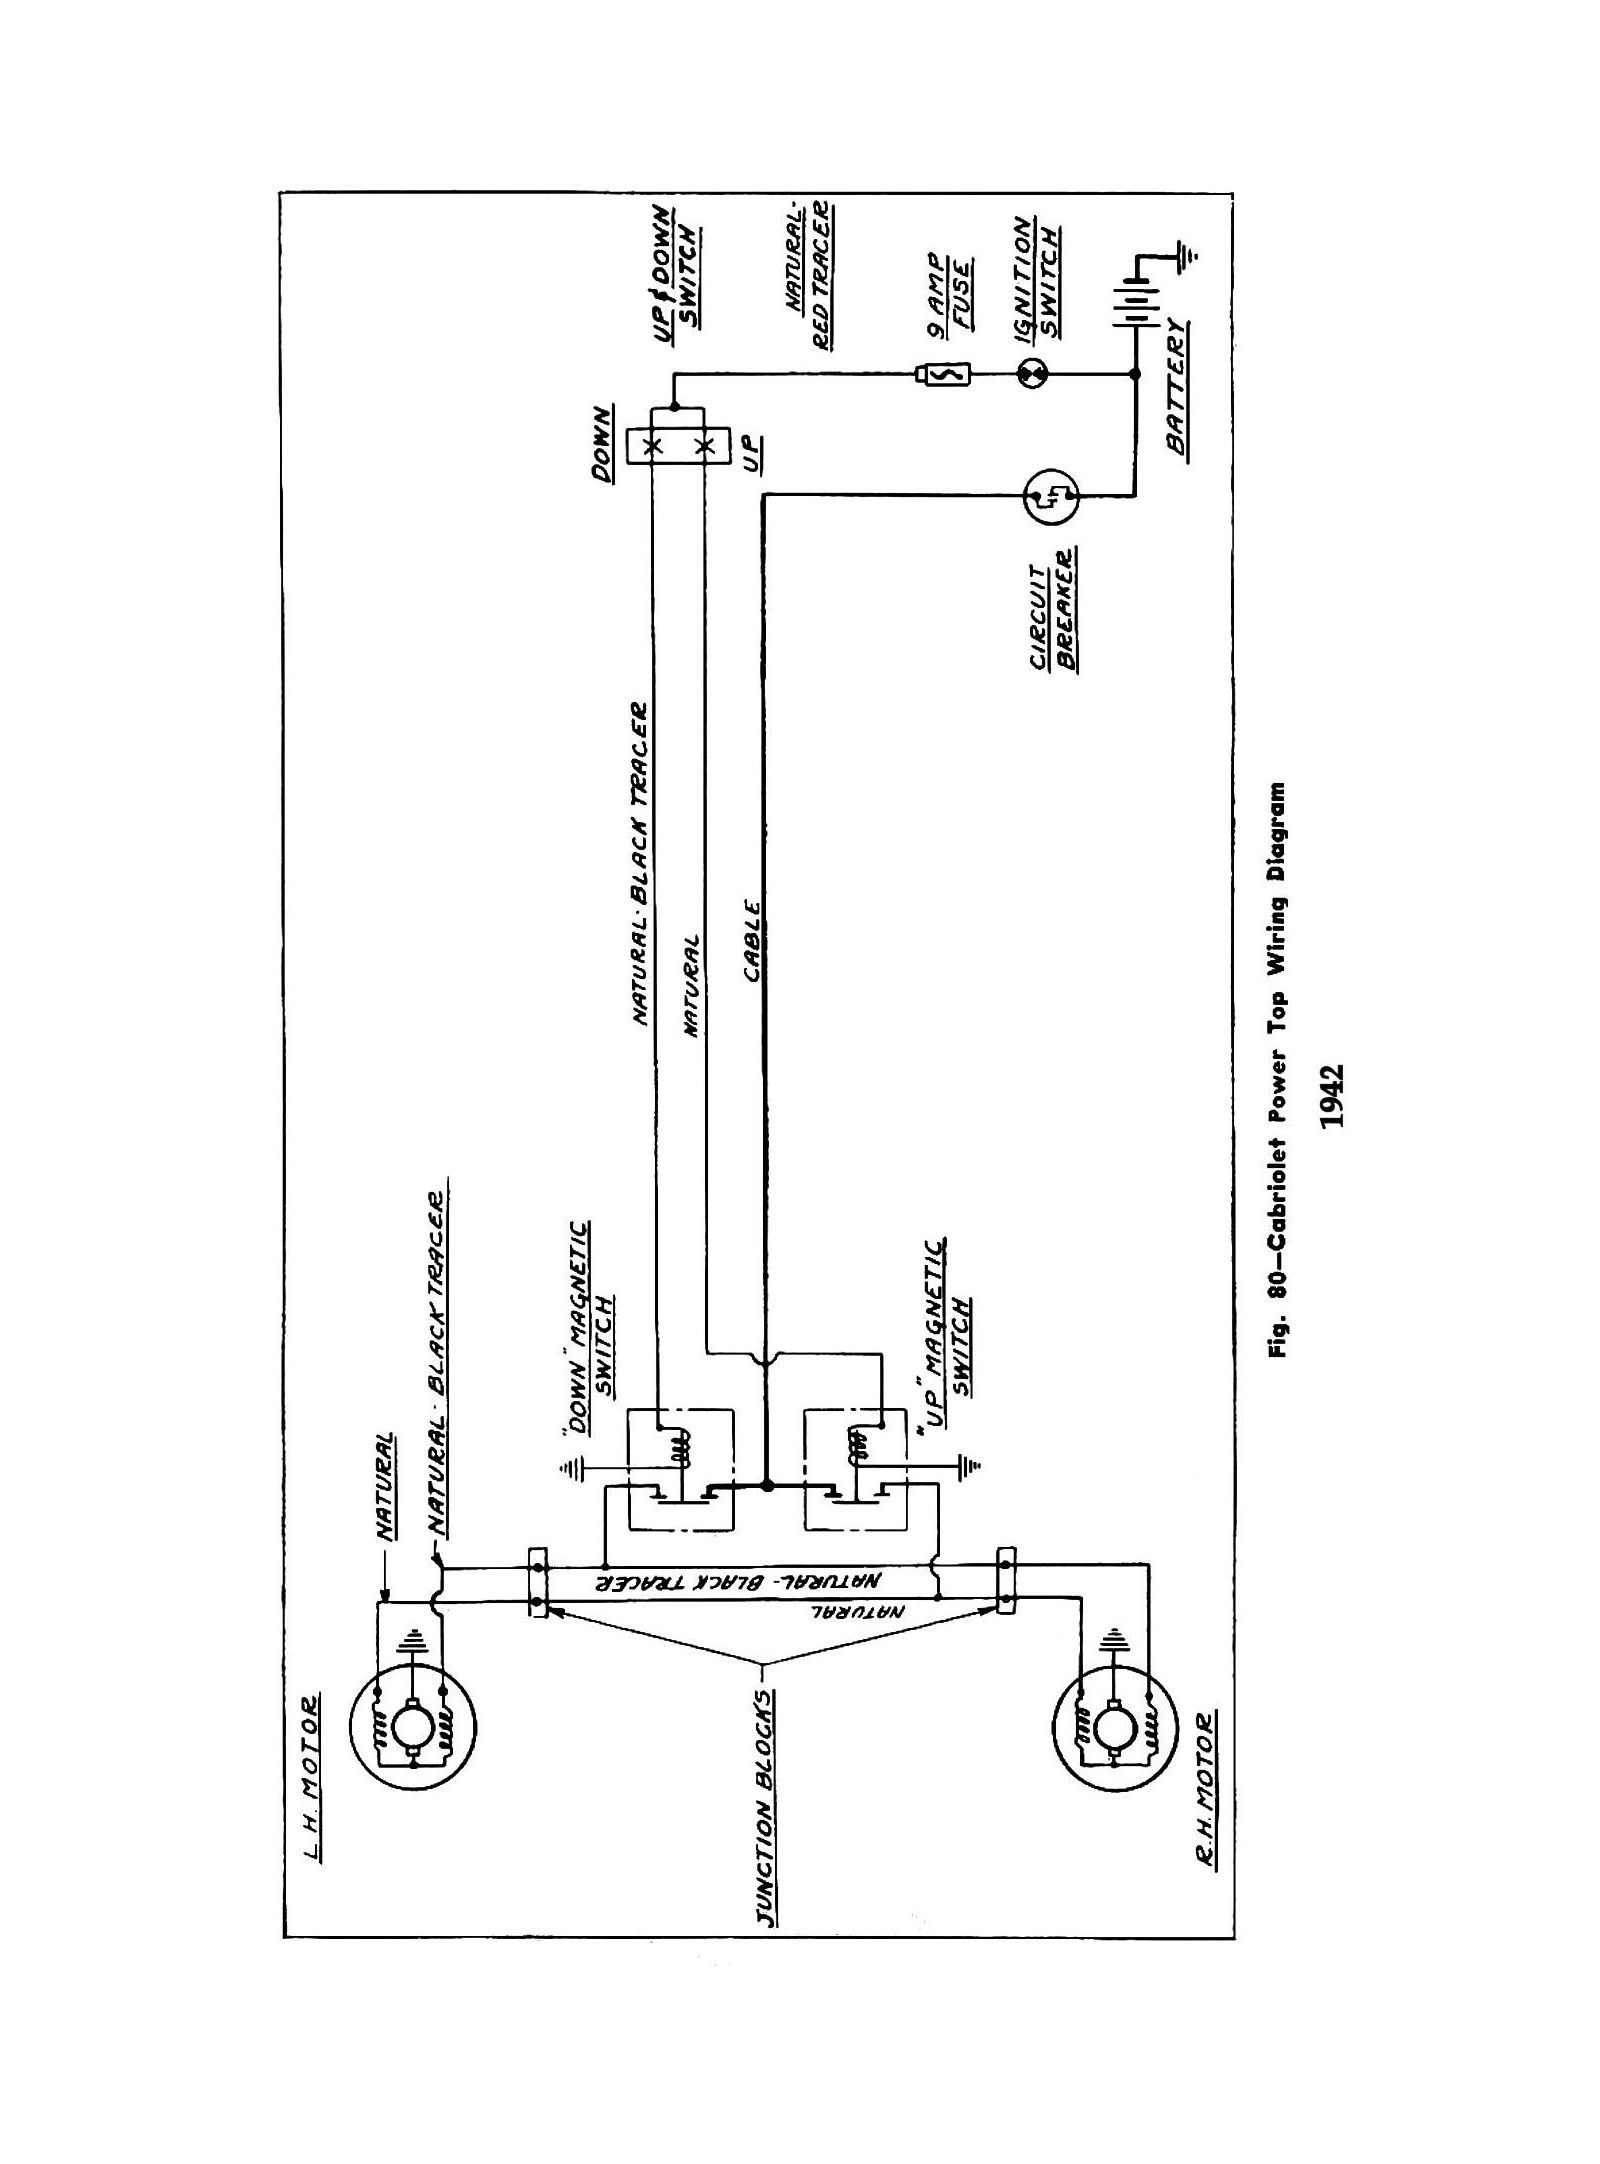 1950 chevy truck wiring diagram with Wiring on 1950 Chevy Truck Frame Swap Body Mount Kit further HP PartList moreover The Neverending Gas Gauge Dilemma topic12752 in addition Car Parts Diagram Door Jamb moreover Wiring.